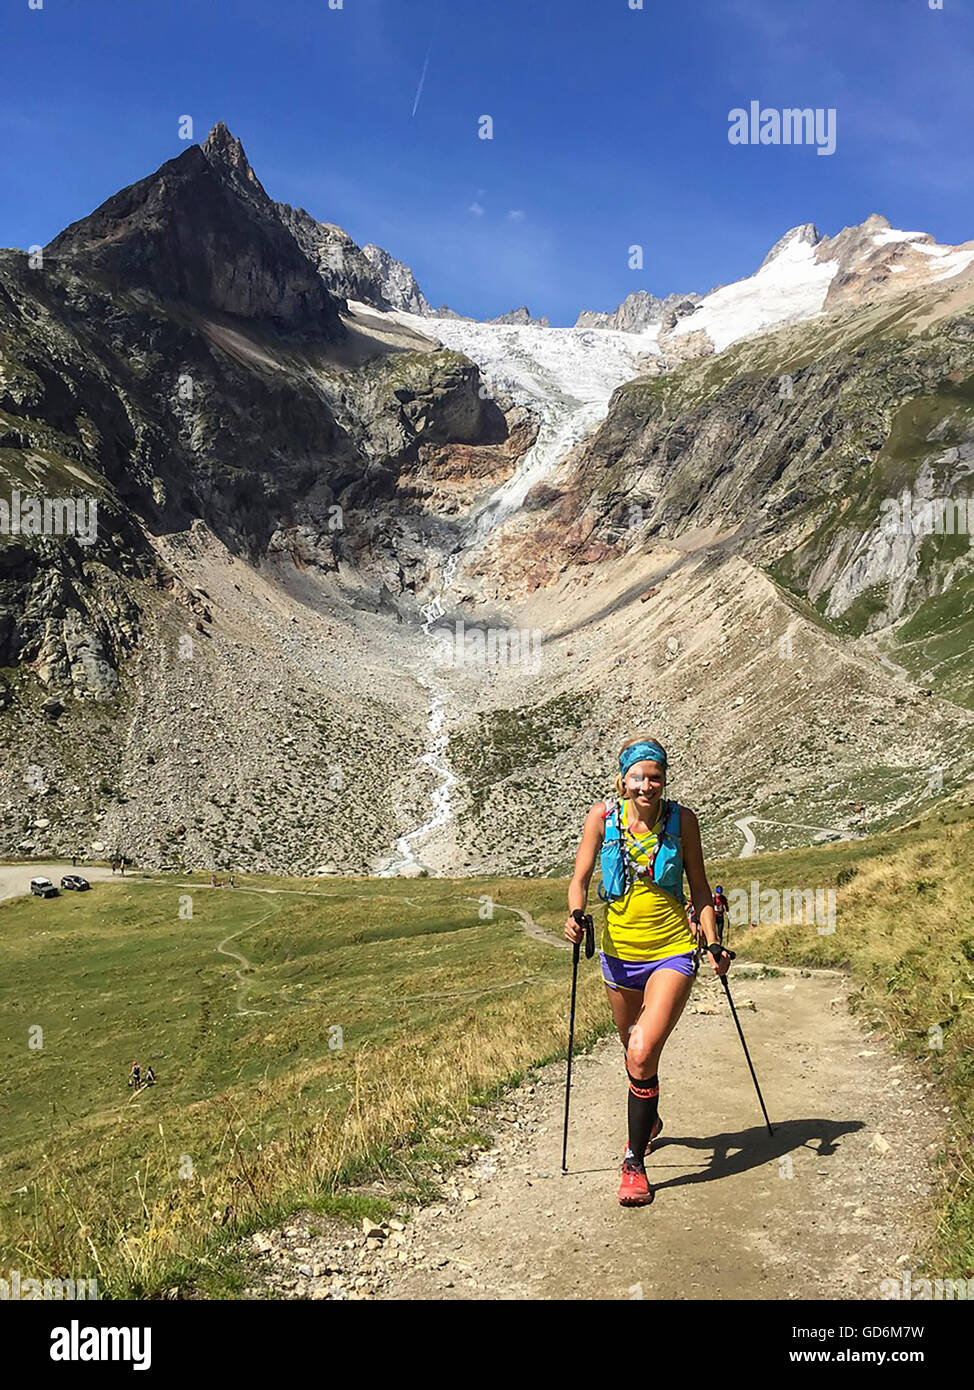 Ultra Trail High Resolution Stock Photography And Images Alamy